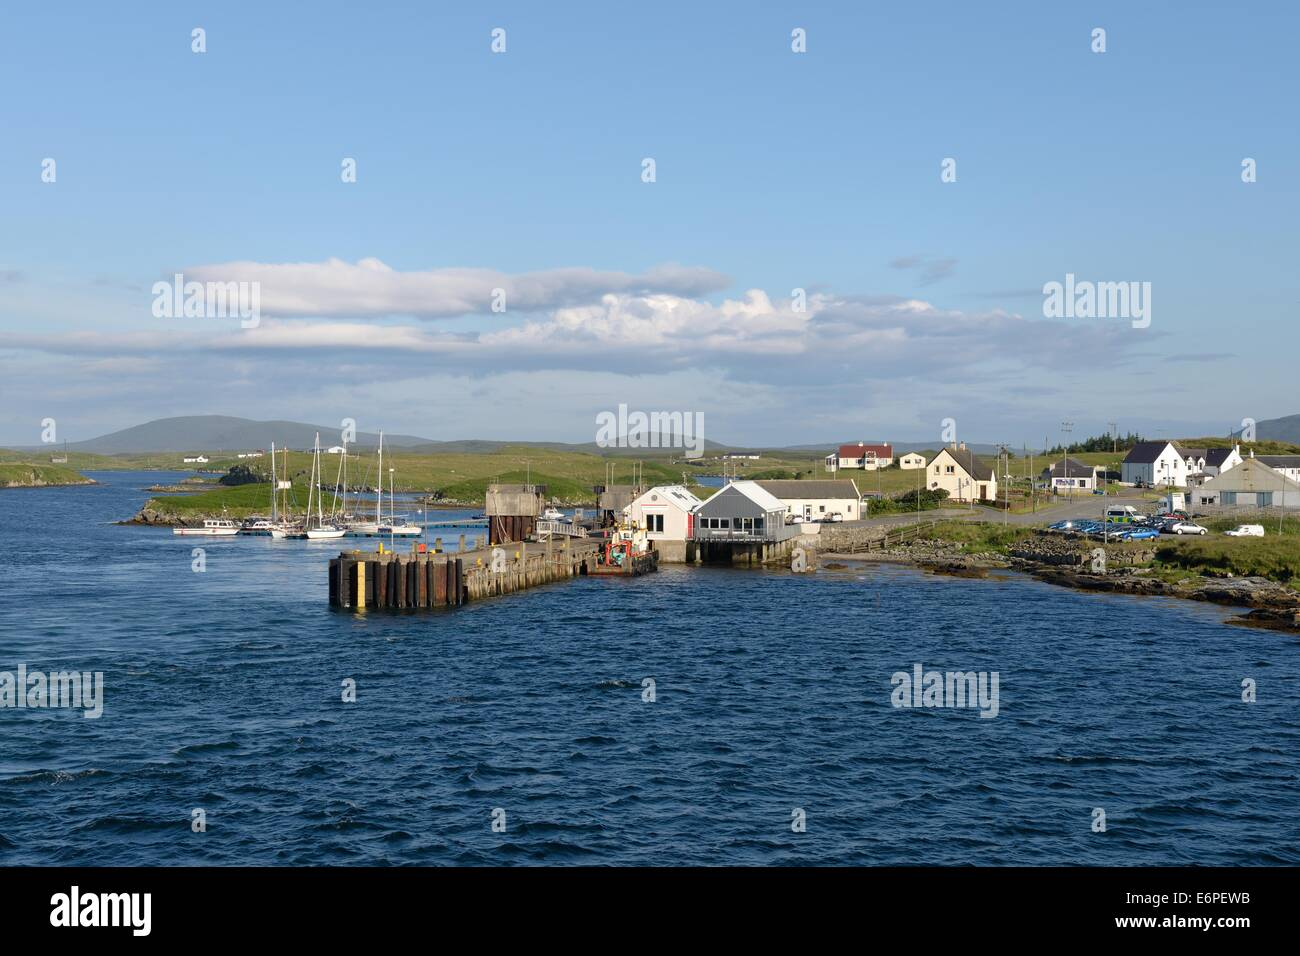 Small village ferry port at Lochmaddy on North Uist, Outer Hebrides, Scotland, UK - Stock Image